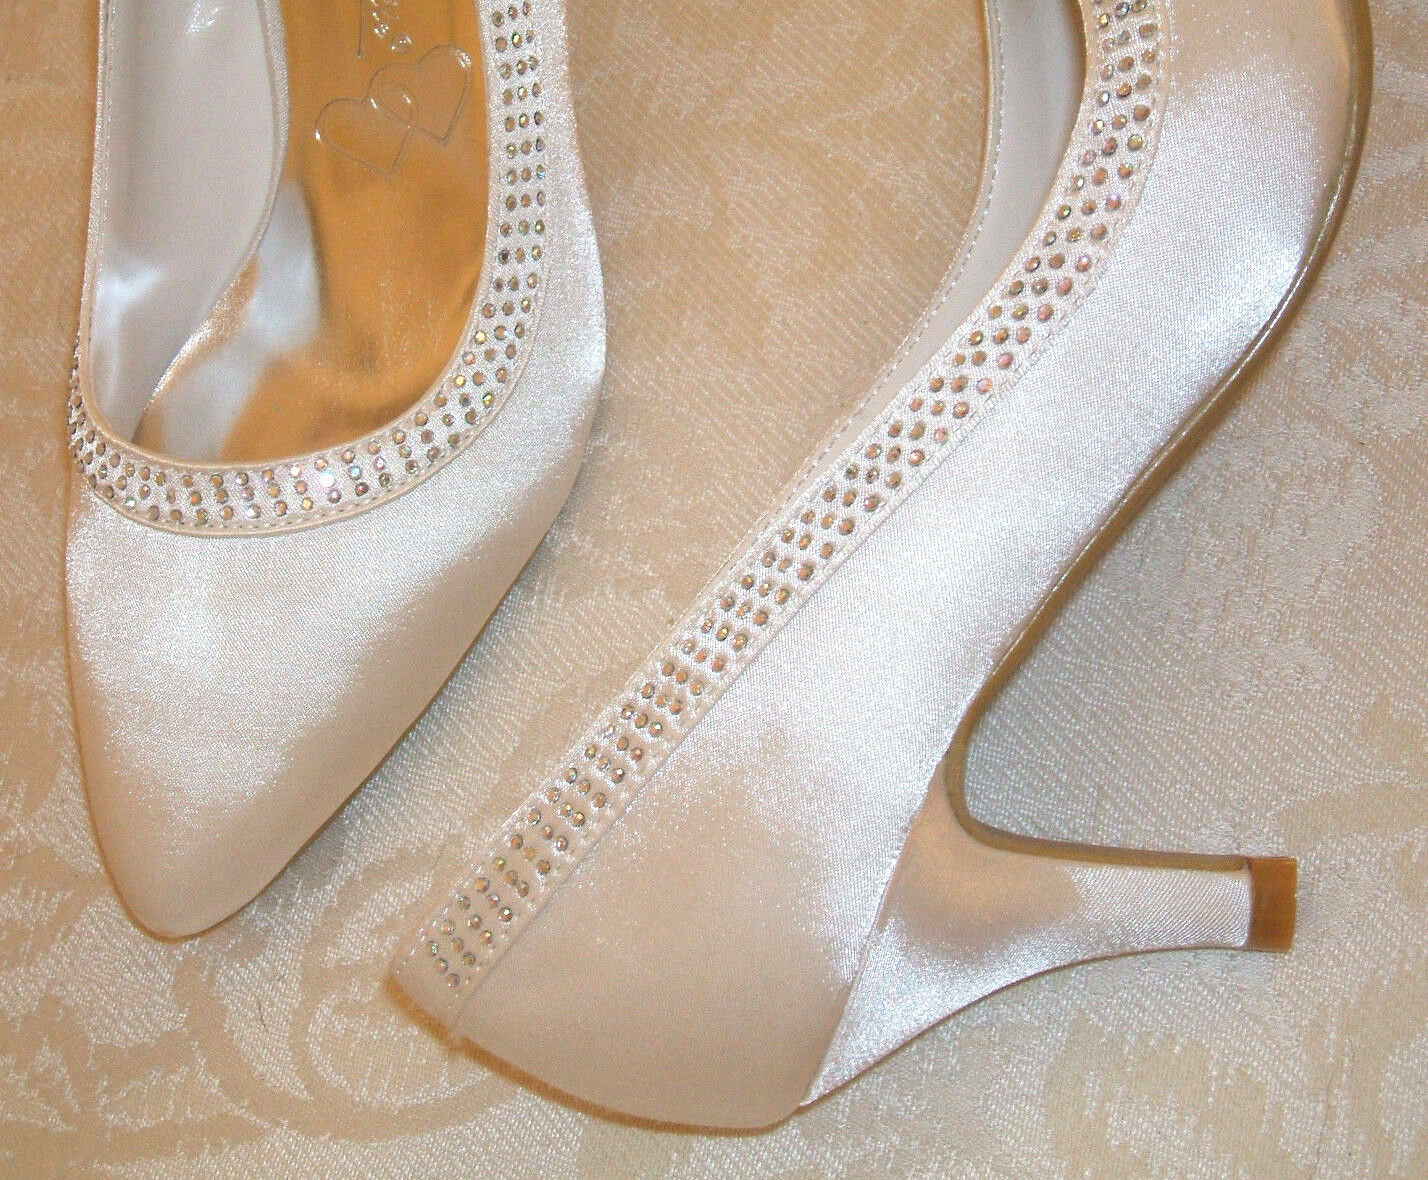 ANNE MICHELLE SIZE 2 3 4 5 6 7 8 WHITE SATIN DIAMANTE MID LOW HEEL BRIDAL SHOES